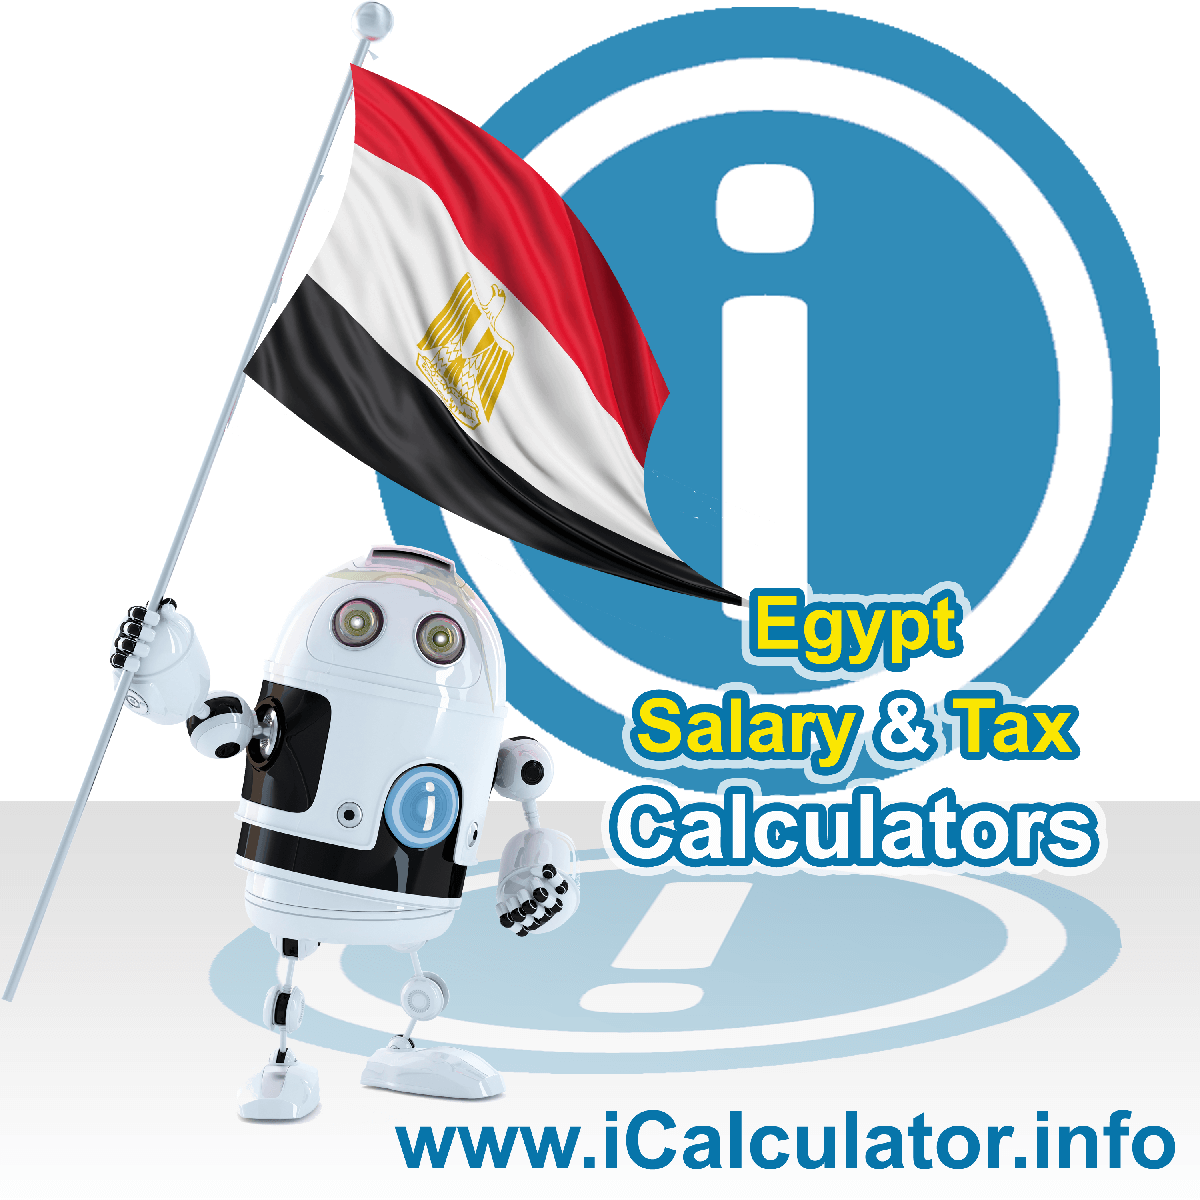 Egypt Tax Calculator. This image shows the Egypt flag and information relating to the tax formula for the Egypt Salary Calculator